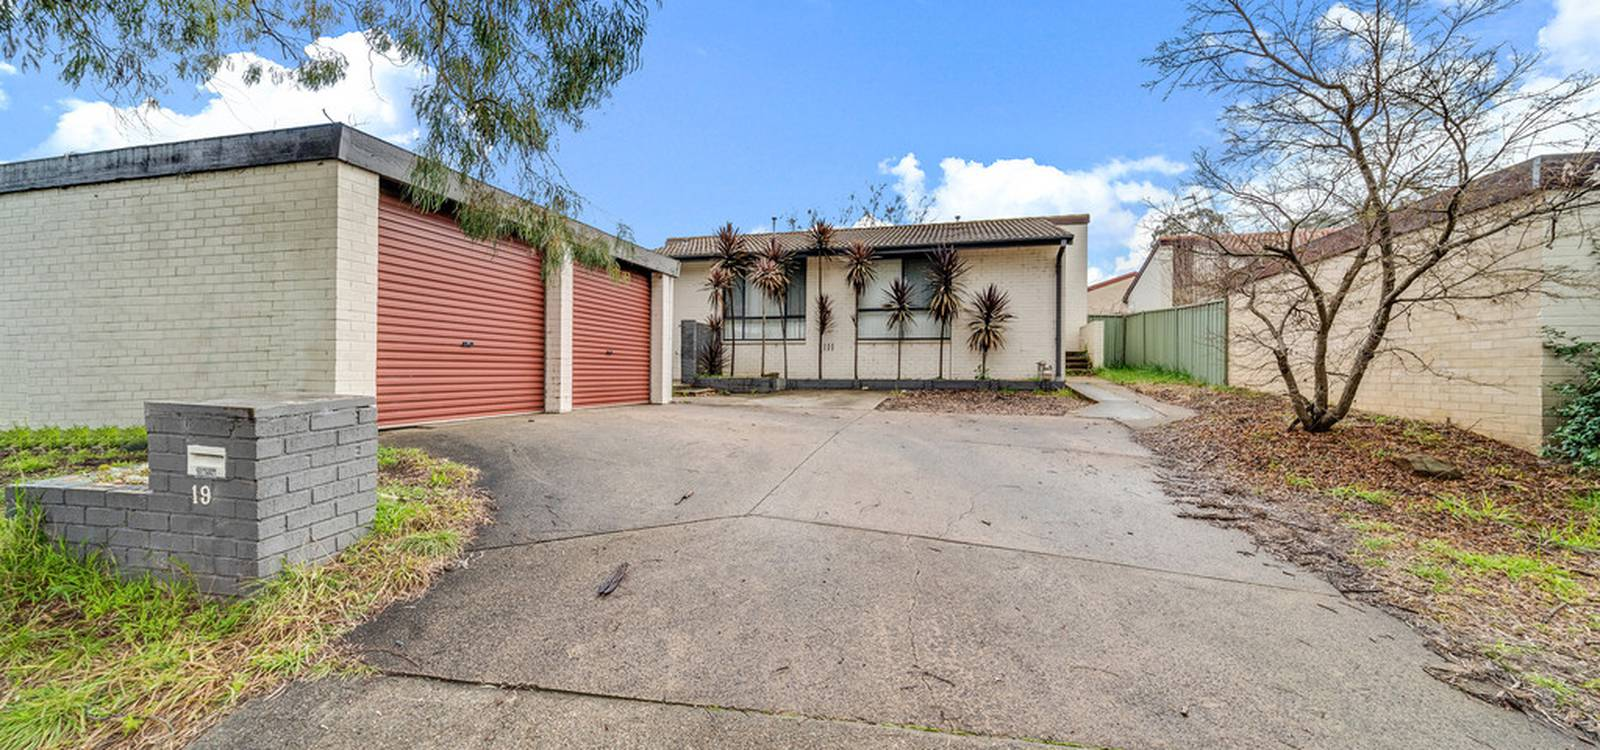 19 Shakespeare Crescent FRASER, ACT 2615 - photo 1